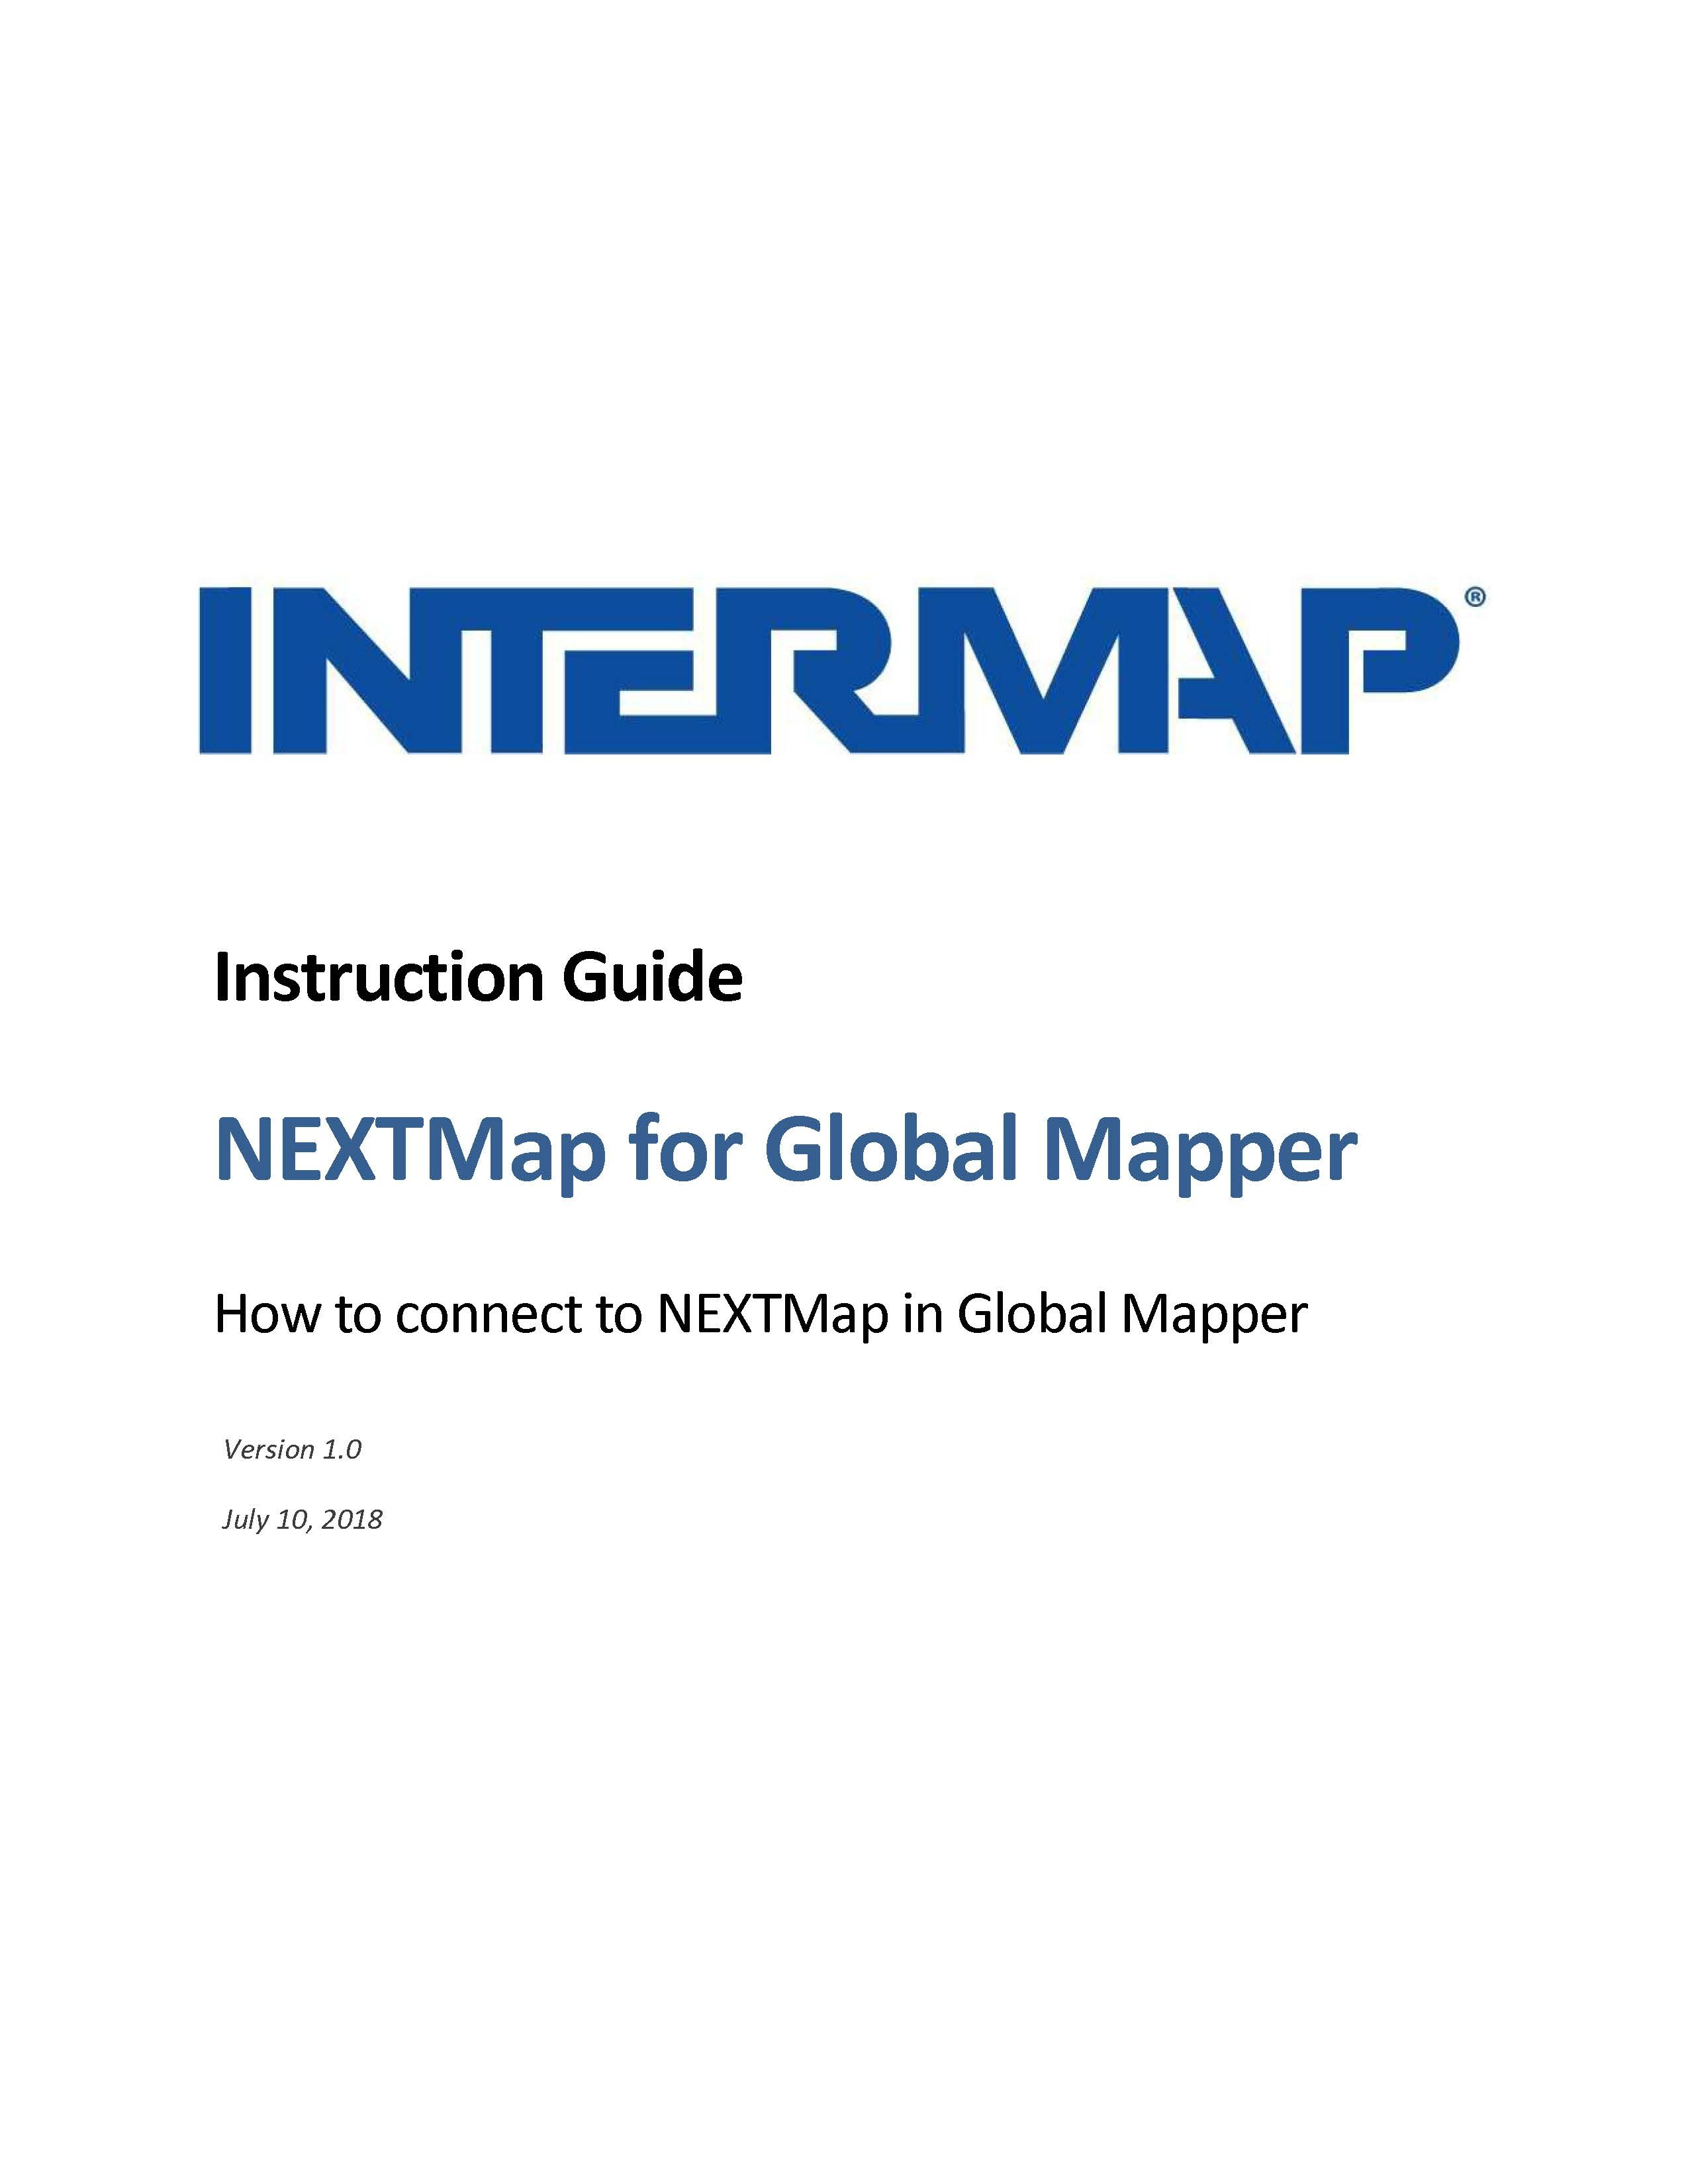 Connecting NEXTMap in Global Mapper Instructions_Page_1.jpg